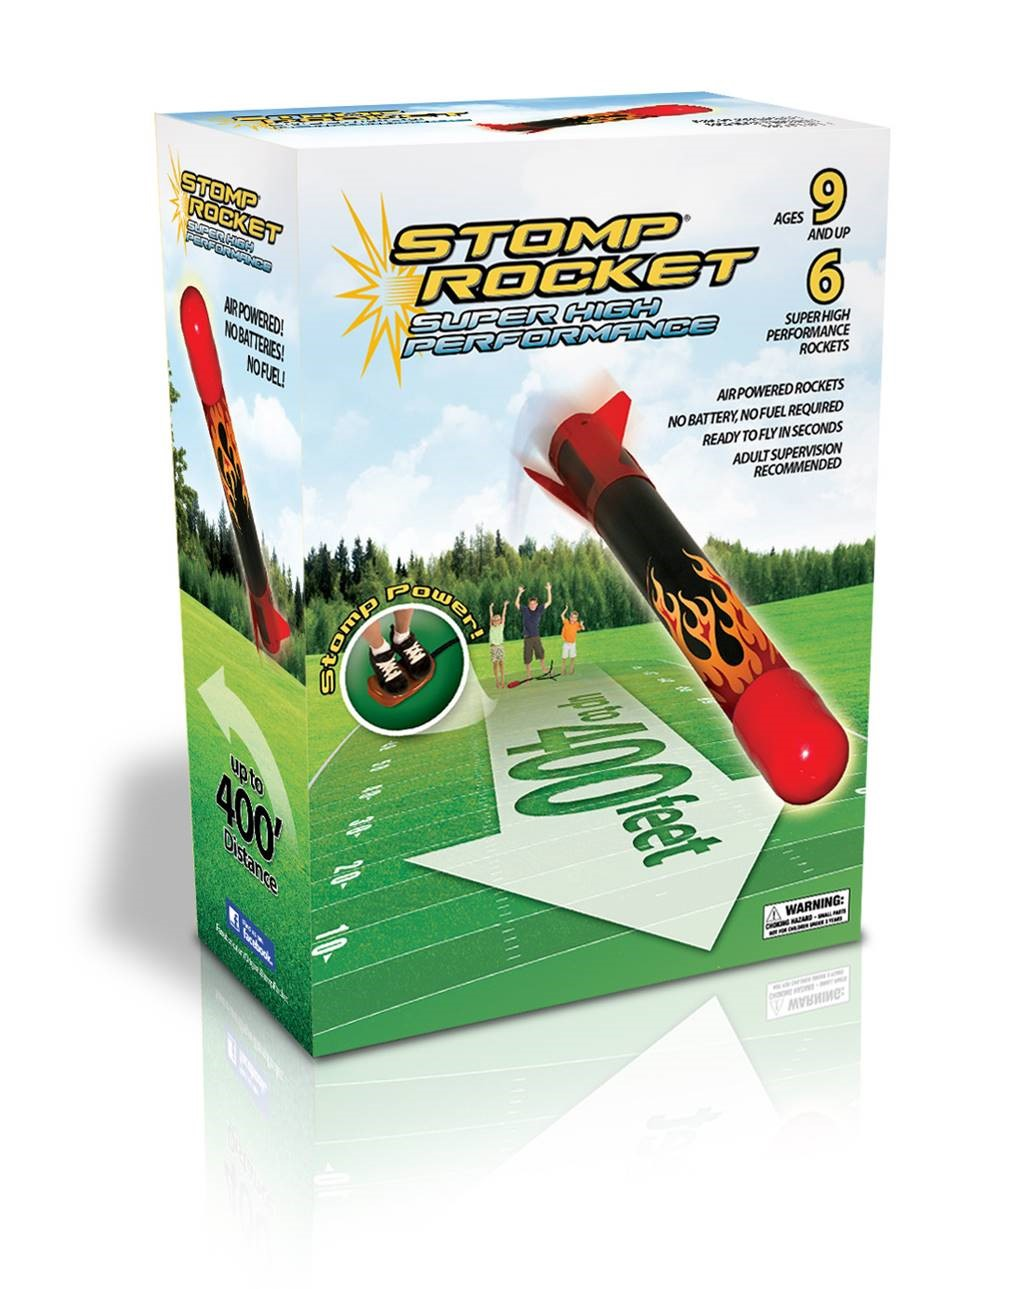 Stomp Rocket Super High Performance, 6 Rockets by D&L Company